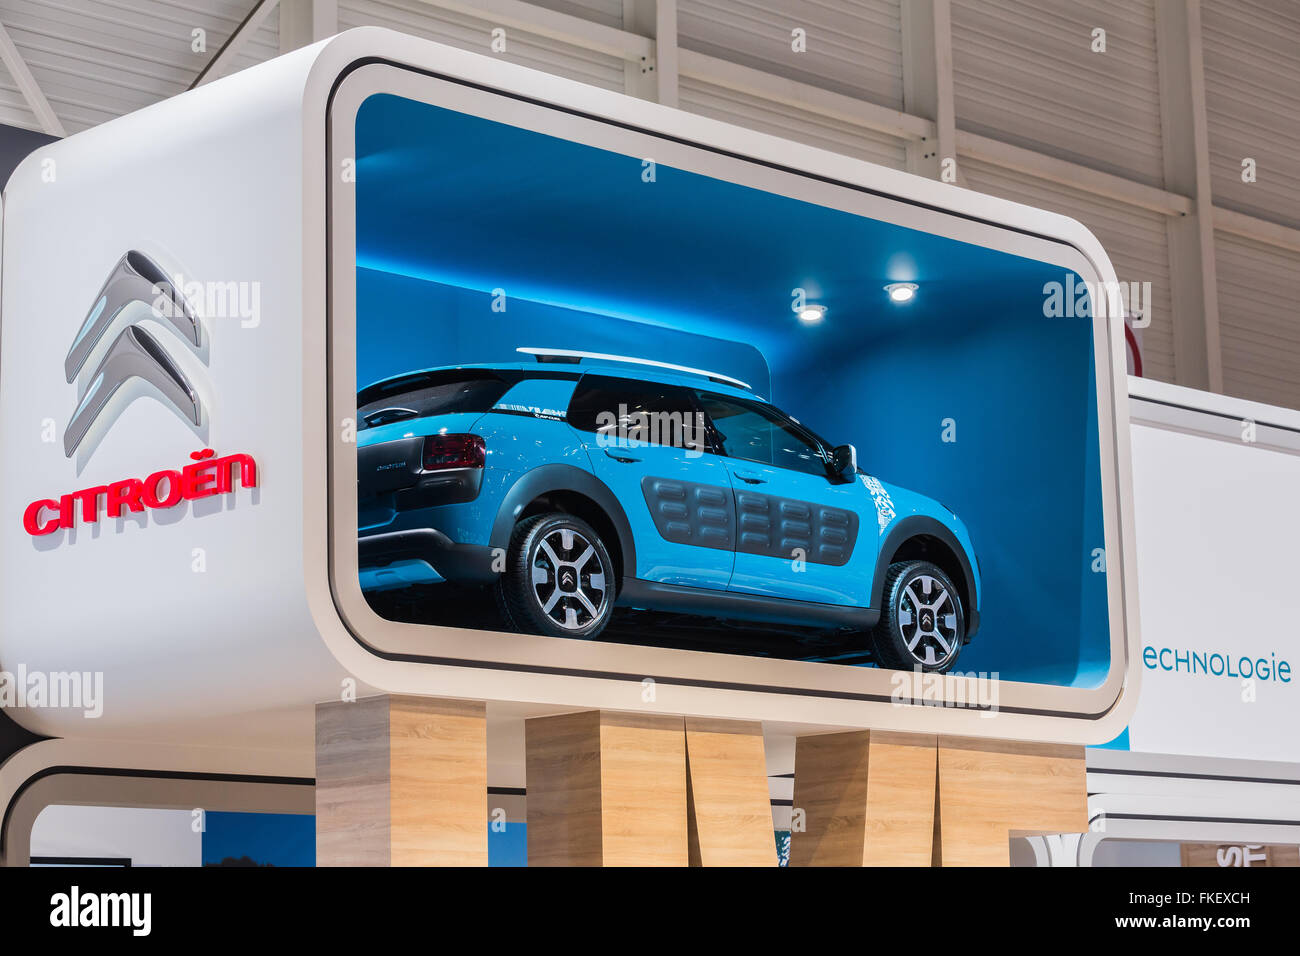 citroen c4 cactus stockfotos citroen c4 cactus bilder alamy. Black Bedroom Furniture Sets. Home Design Ideas